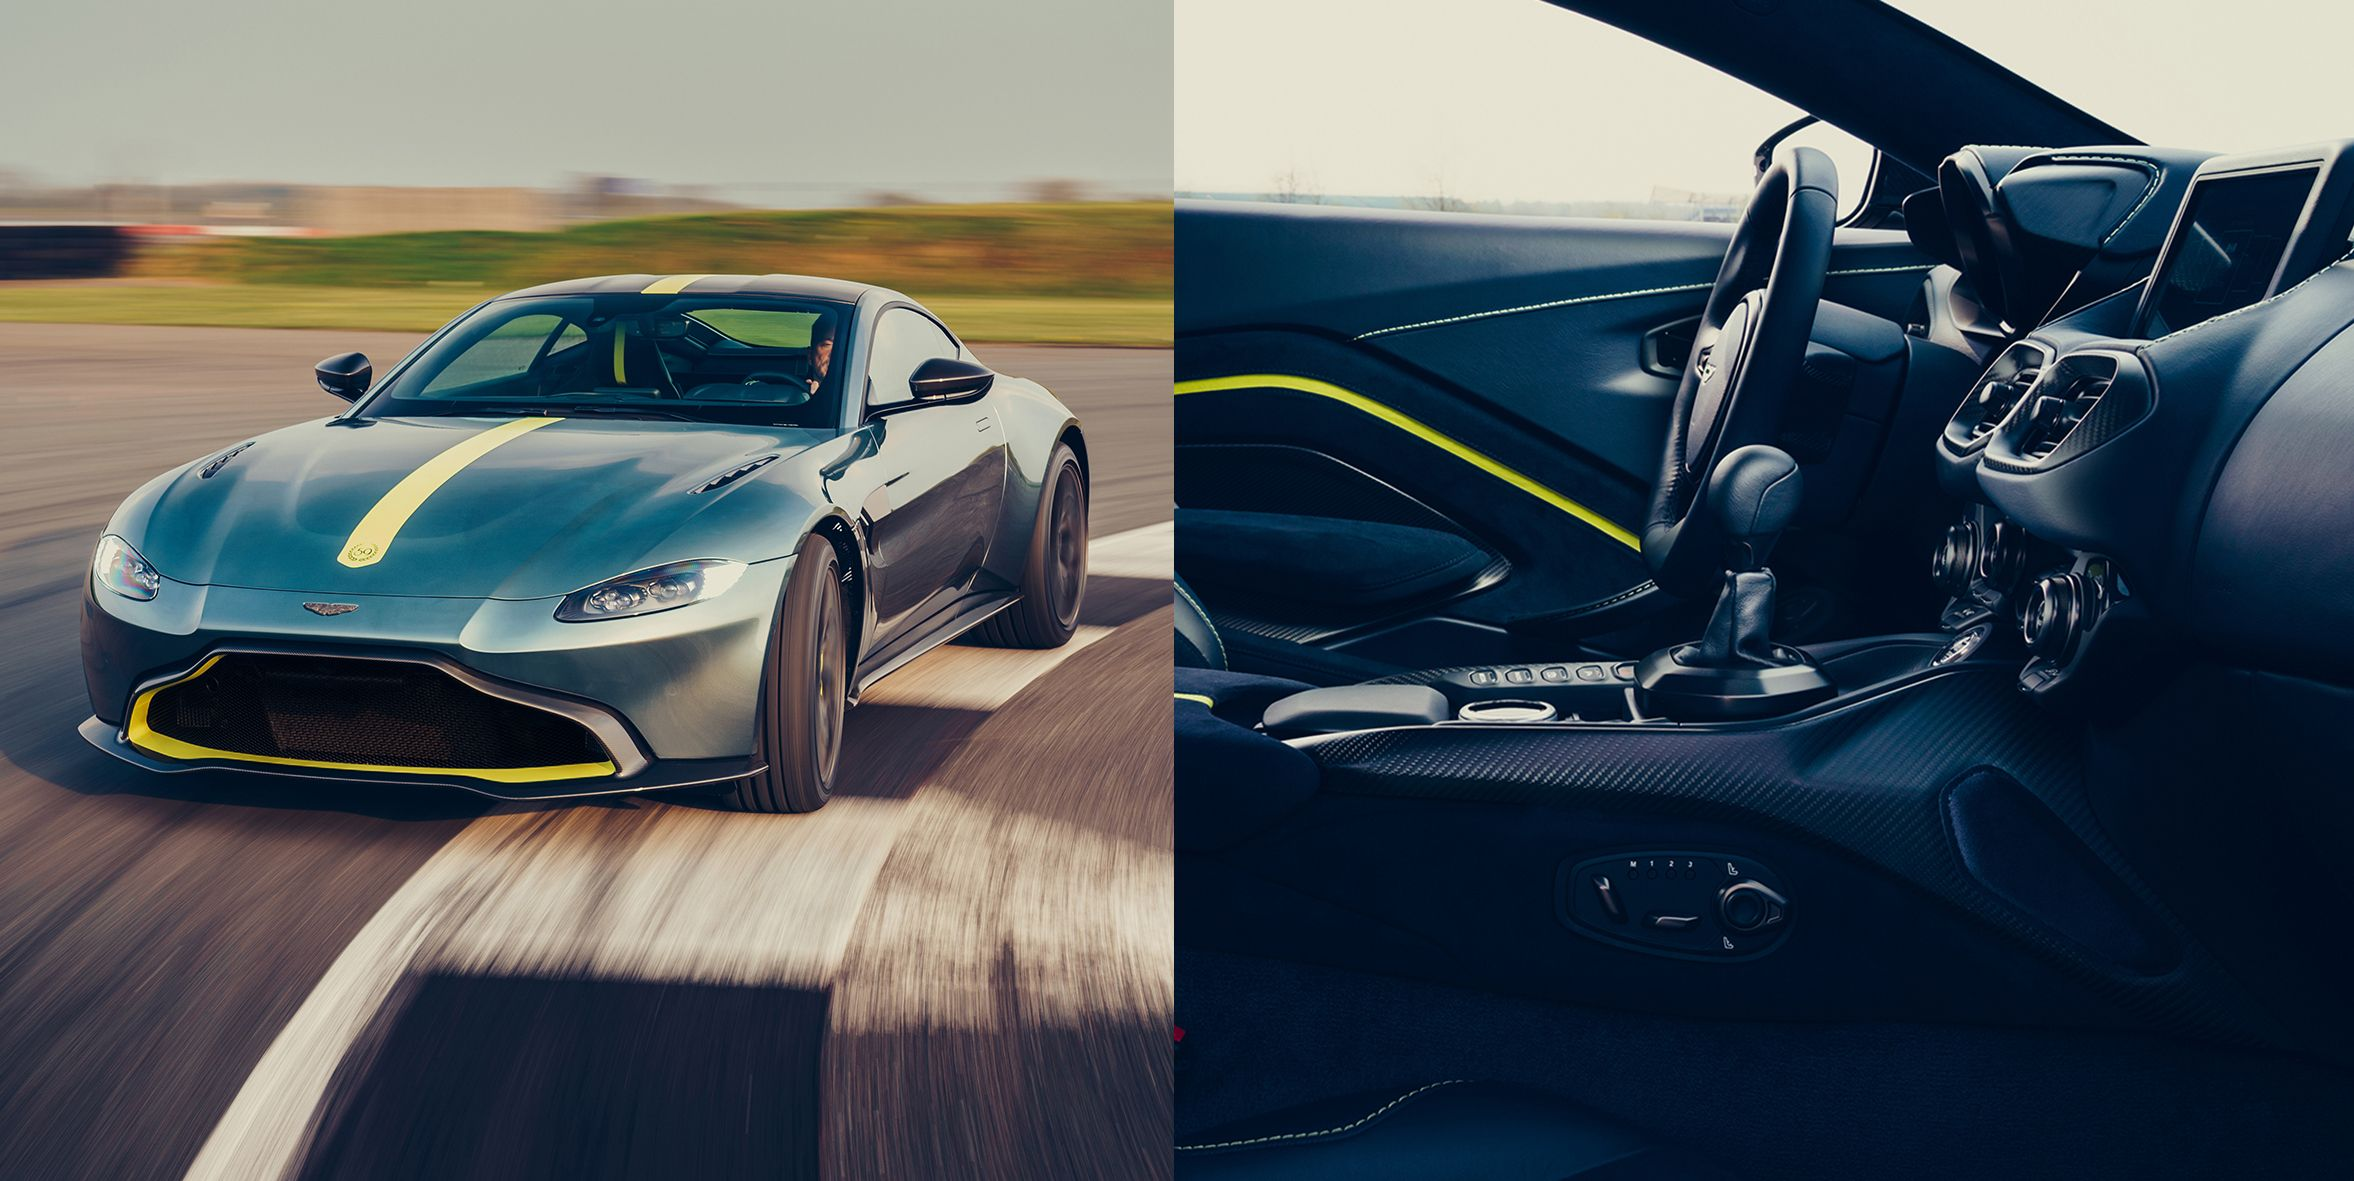 The Manual Aston Martin Vantage Is Finally Here